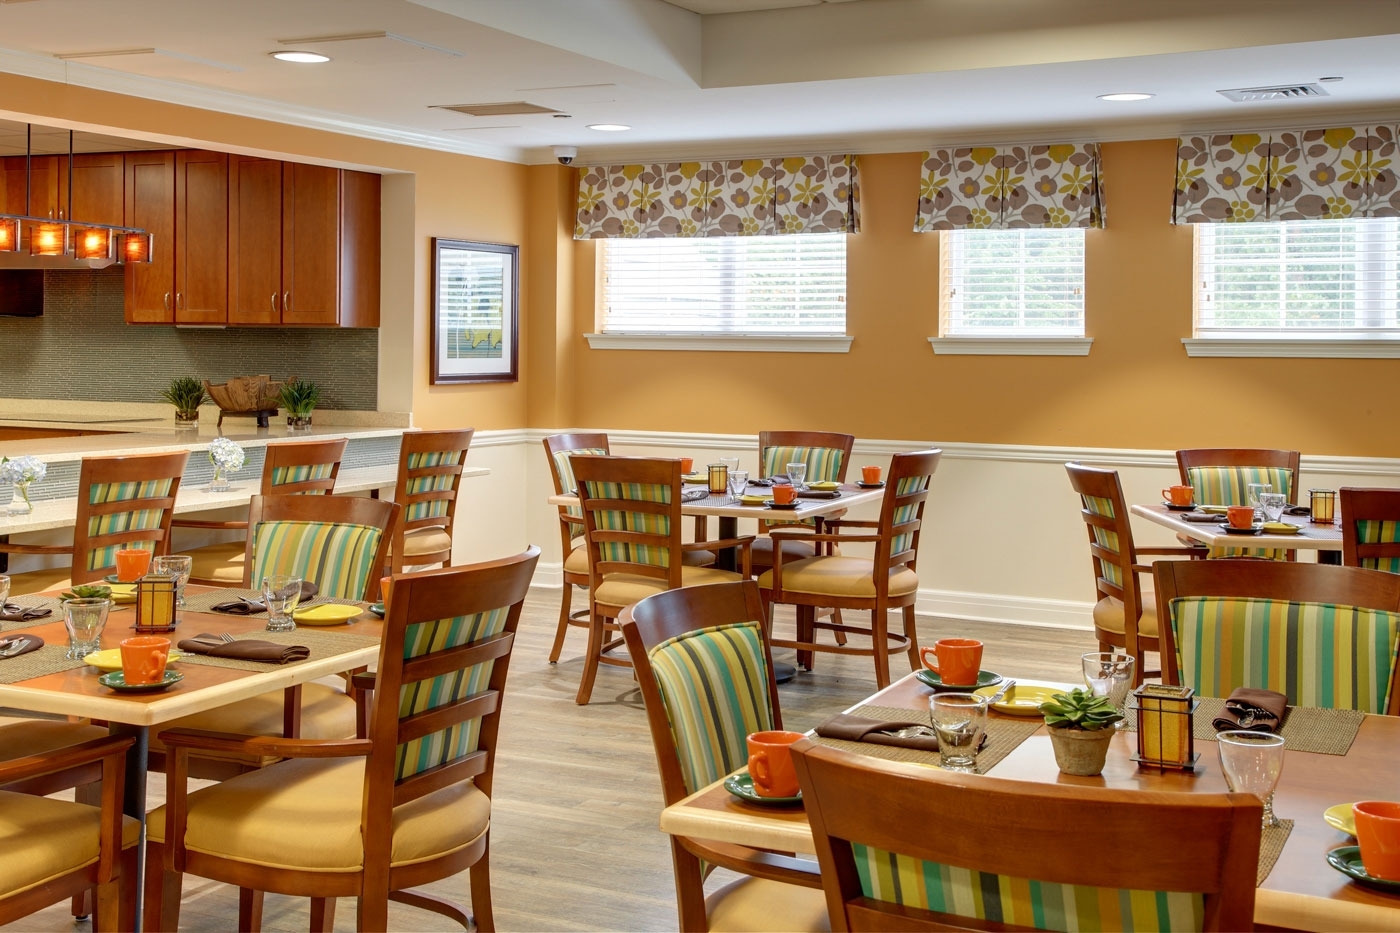 Our bright and cheerful interior design for a dining area inside an assisted living/memory care community.